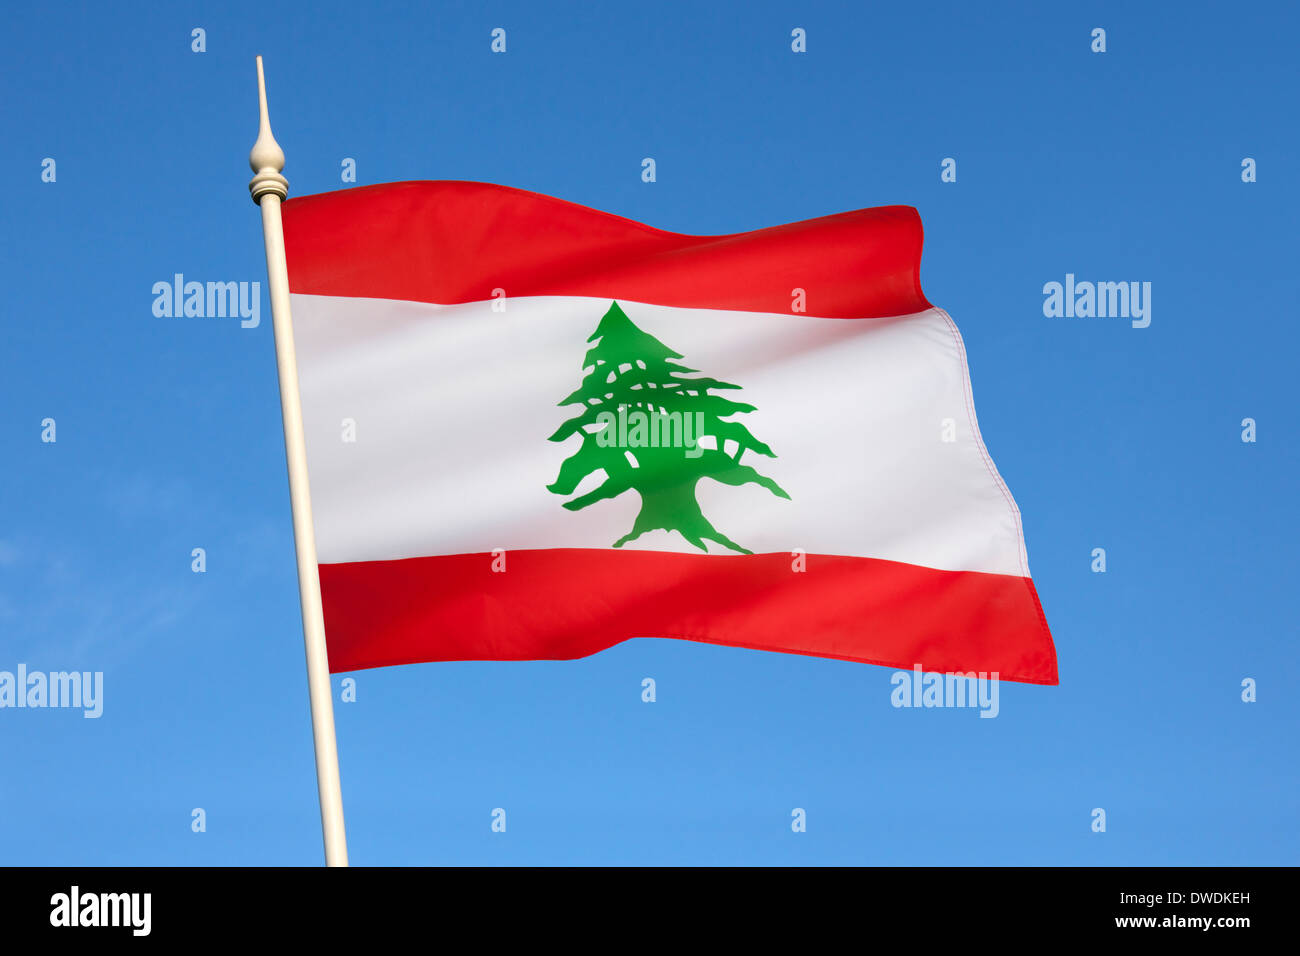 Le drapeau du Liban Photo Stock